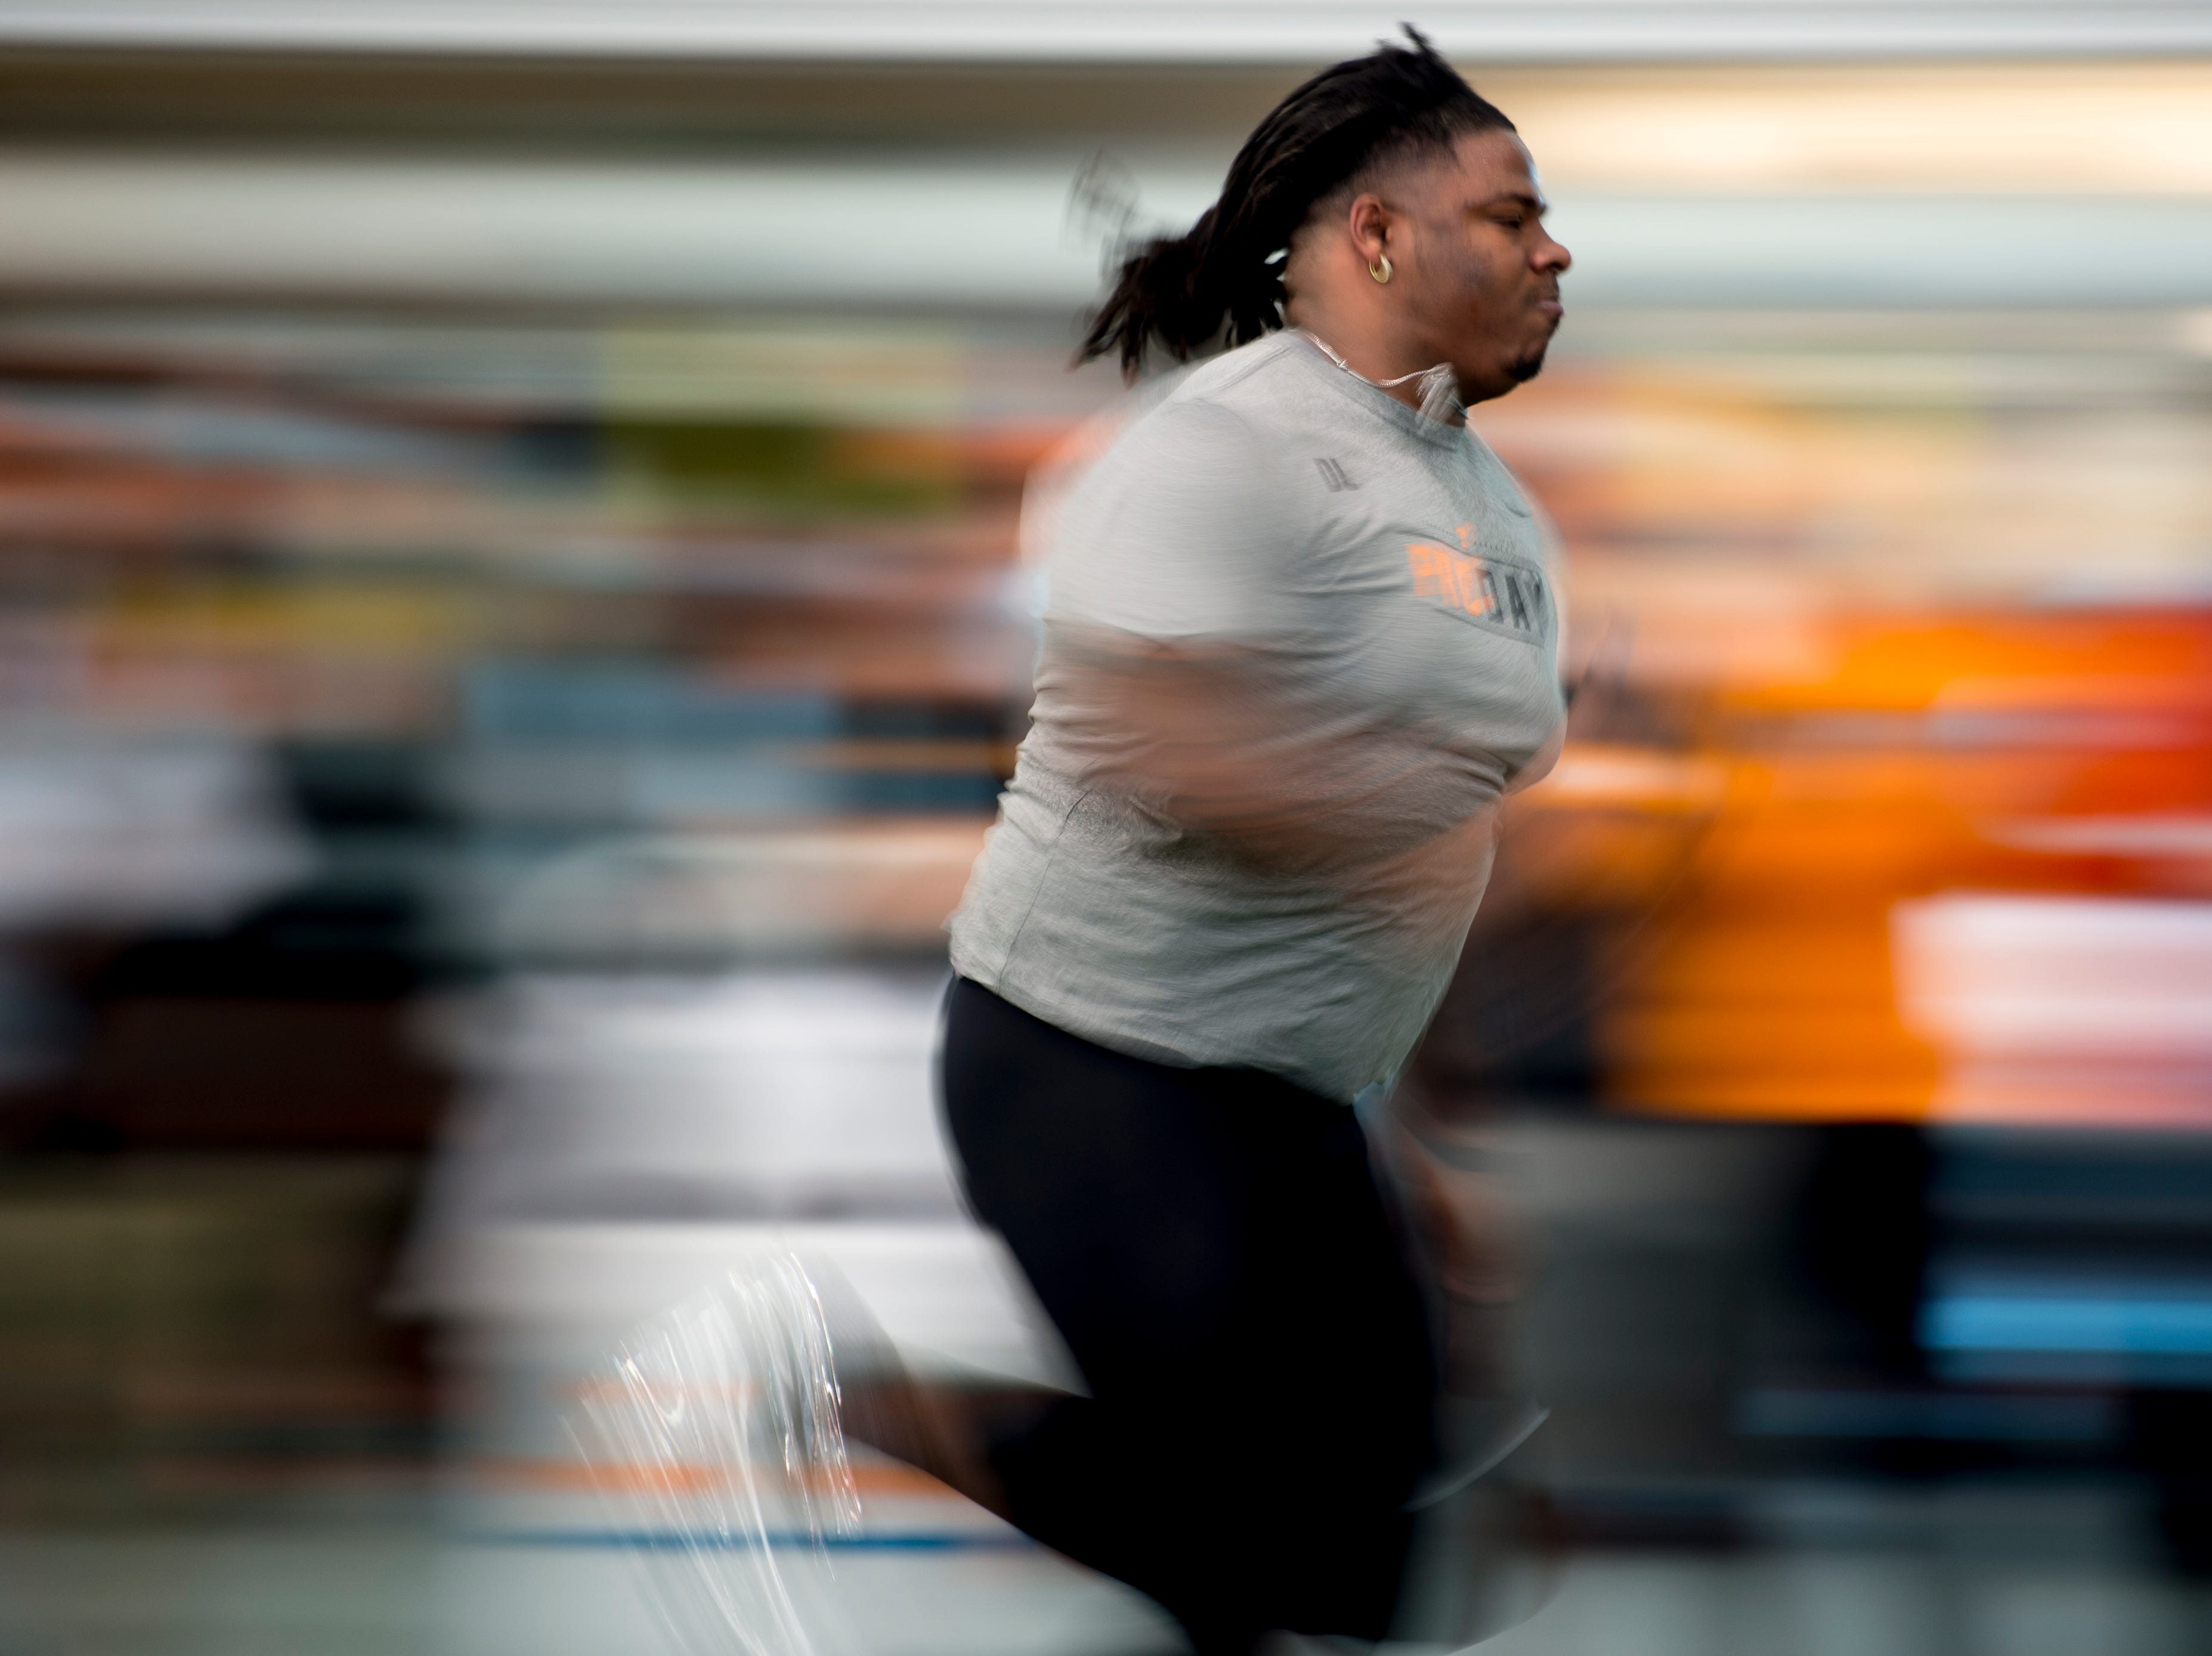 Alexis Johnson does the 40 yard dash at Tennessee Pro Day at Anderson Training Facility in Knoxville, Tennessee on Thursday, March 14, 2019. Draft prospects from Tennessee and other schools worked out before NFL scouts.